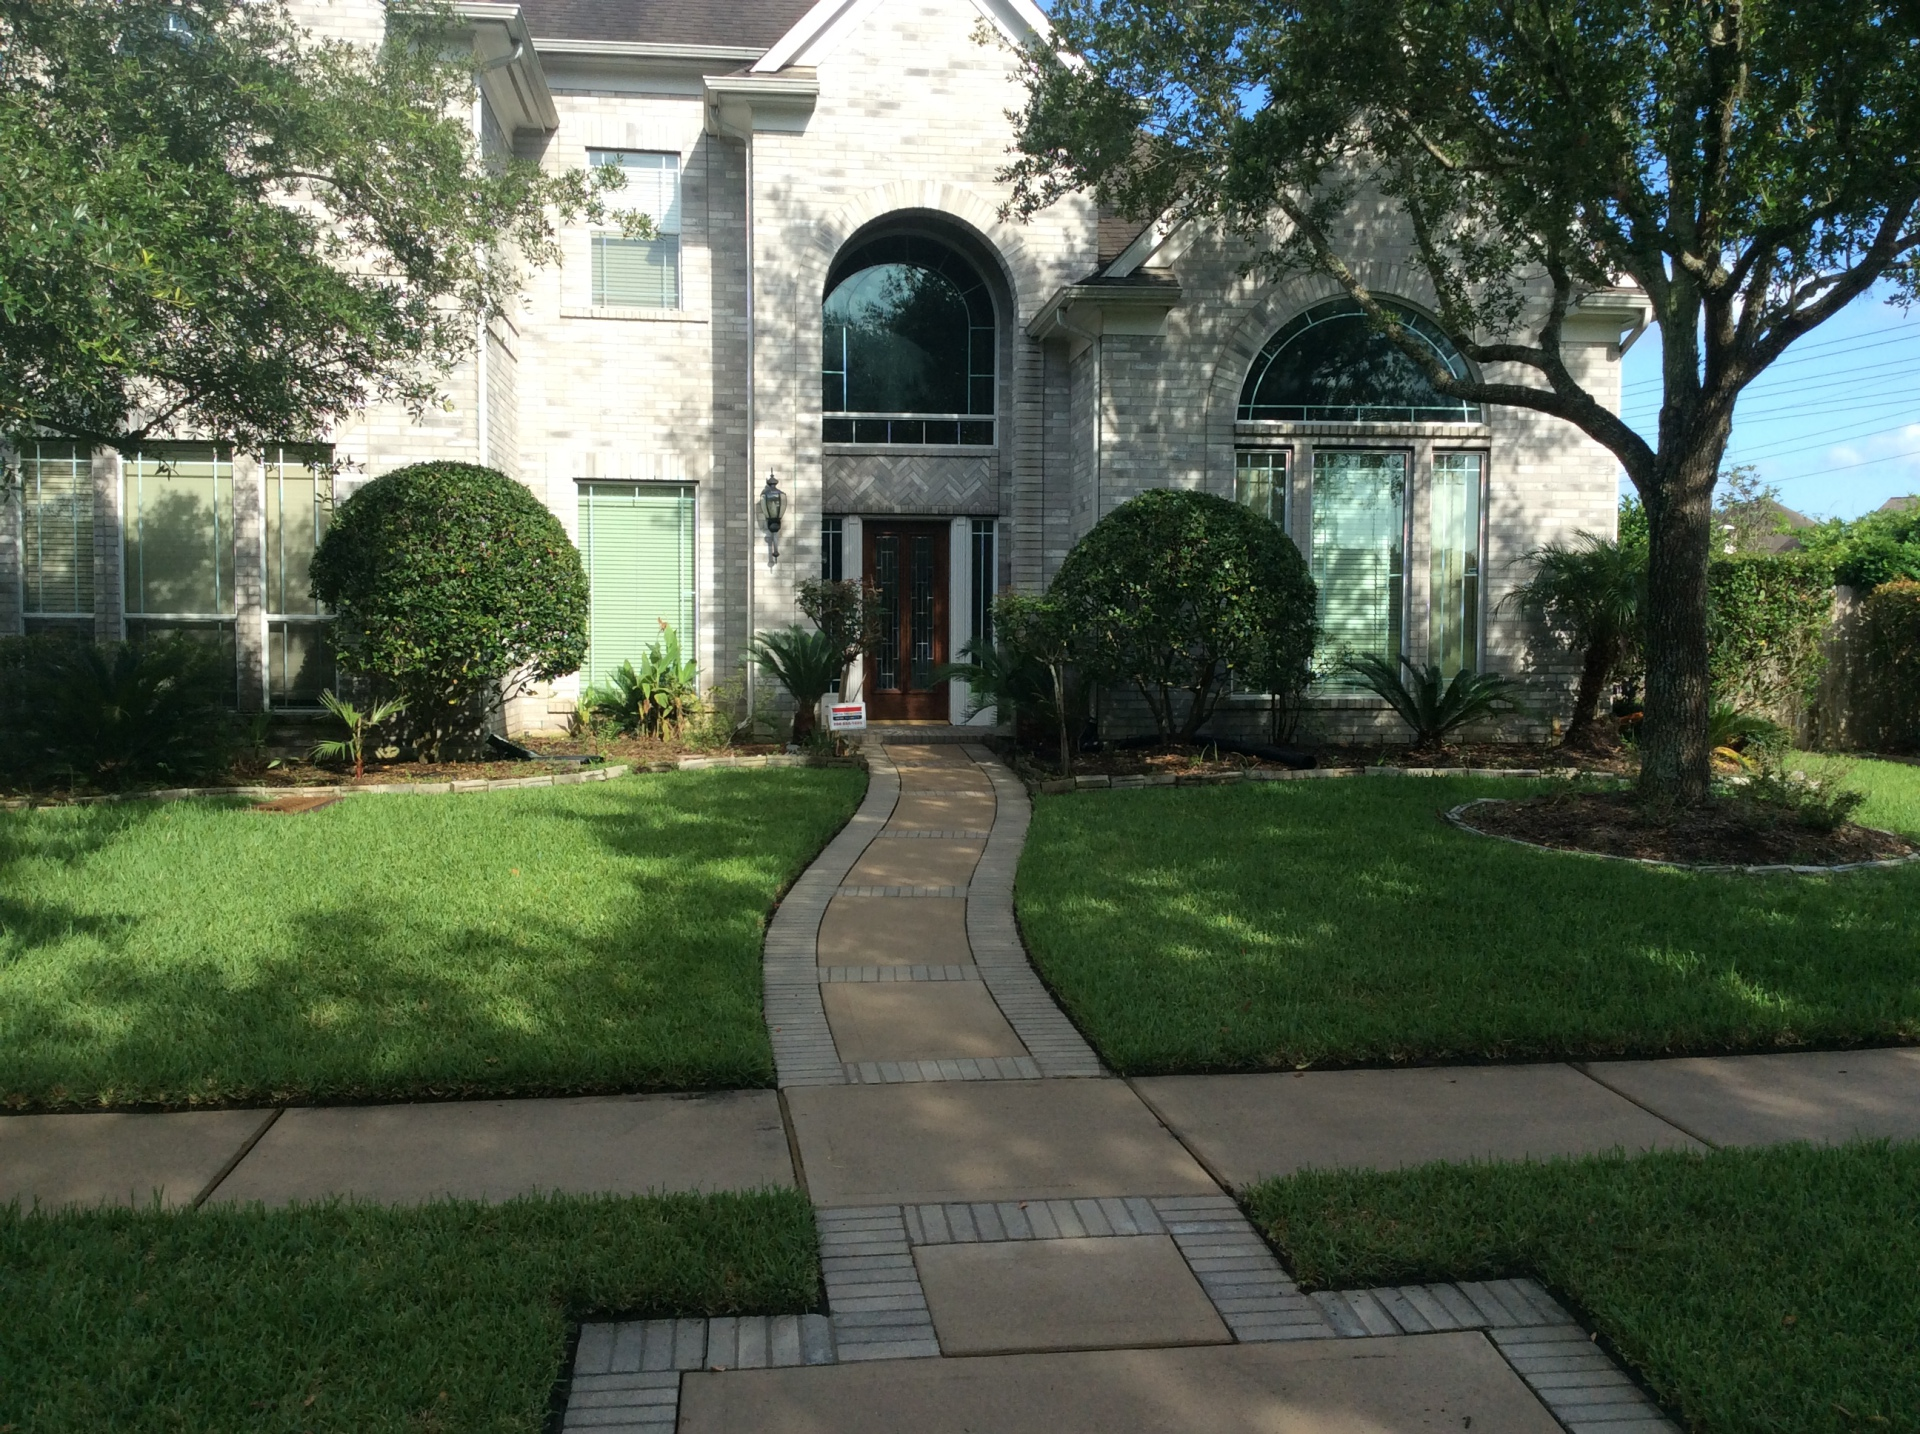 Residental pressure washing services in pearland texas